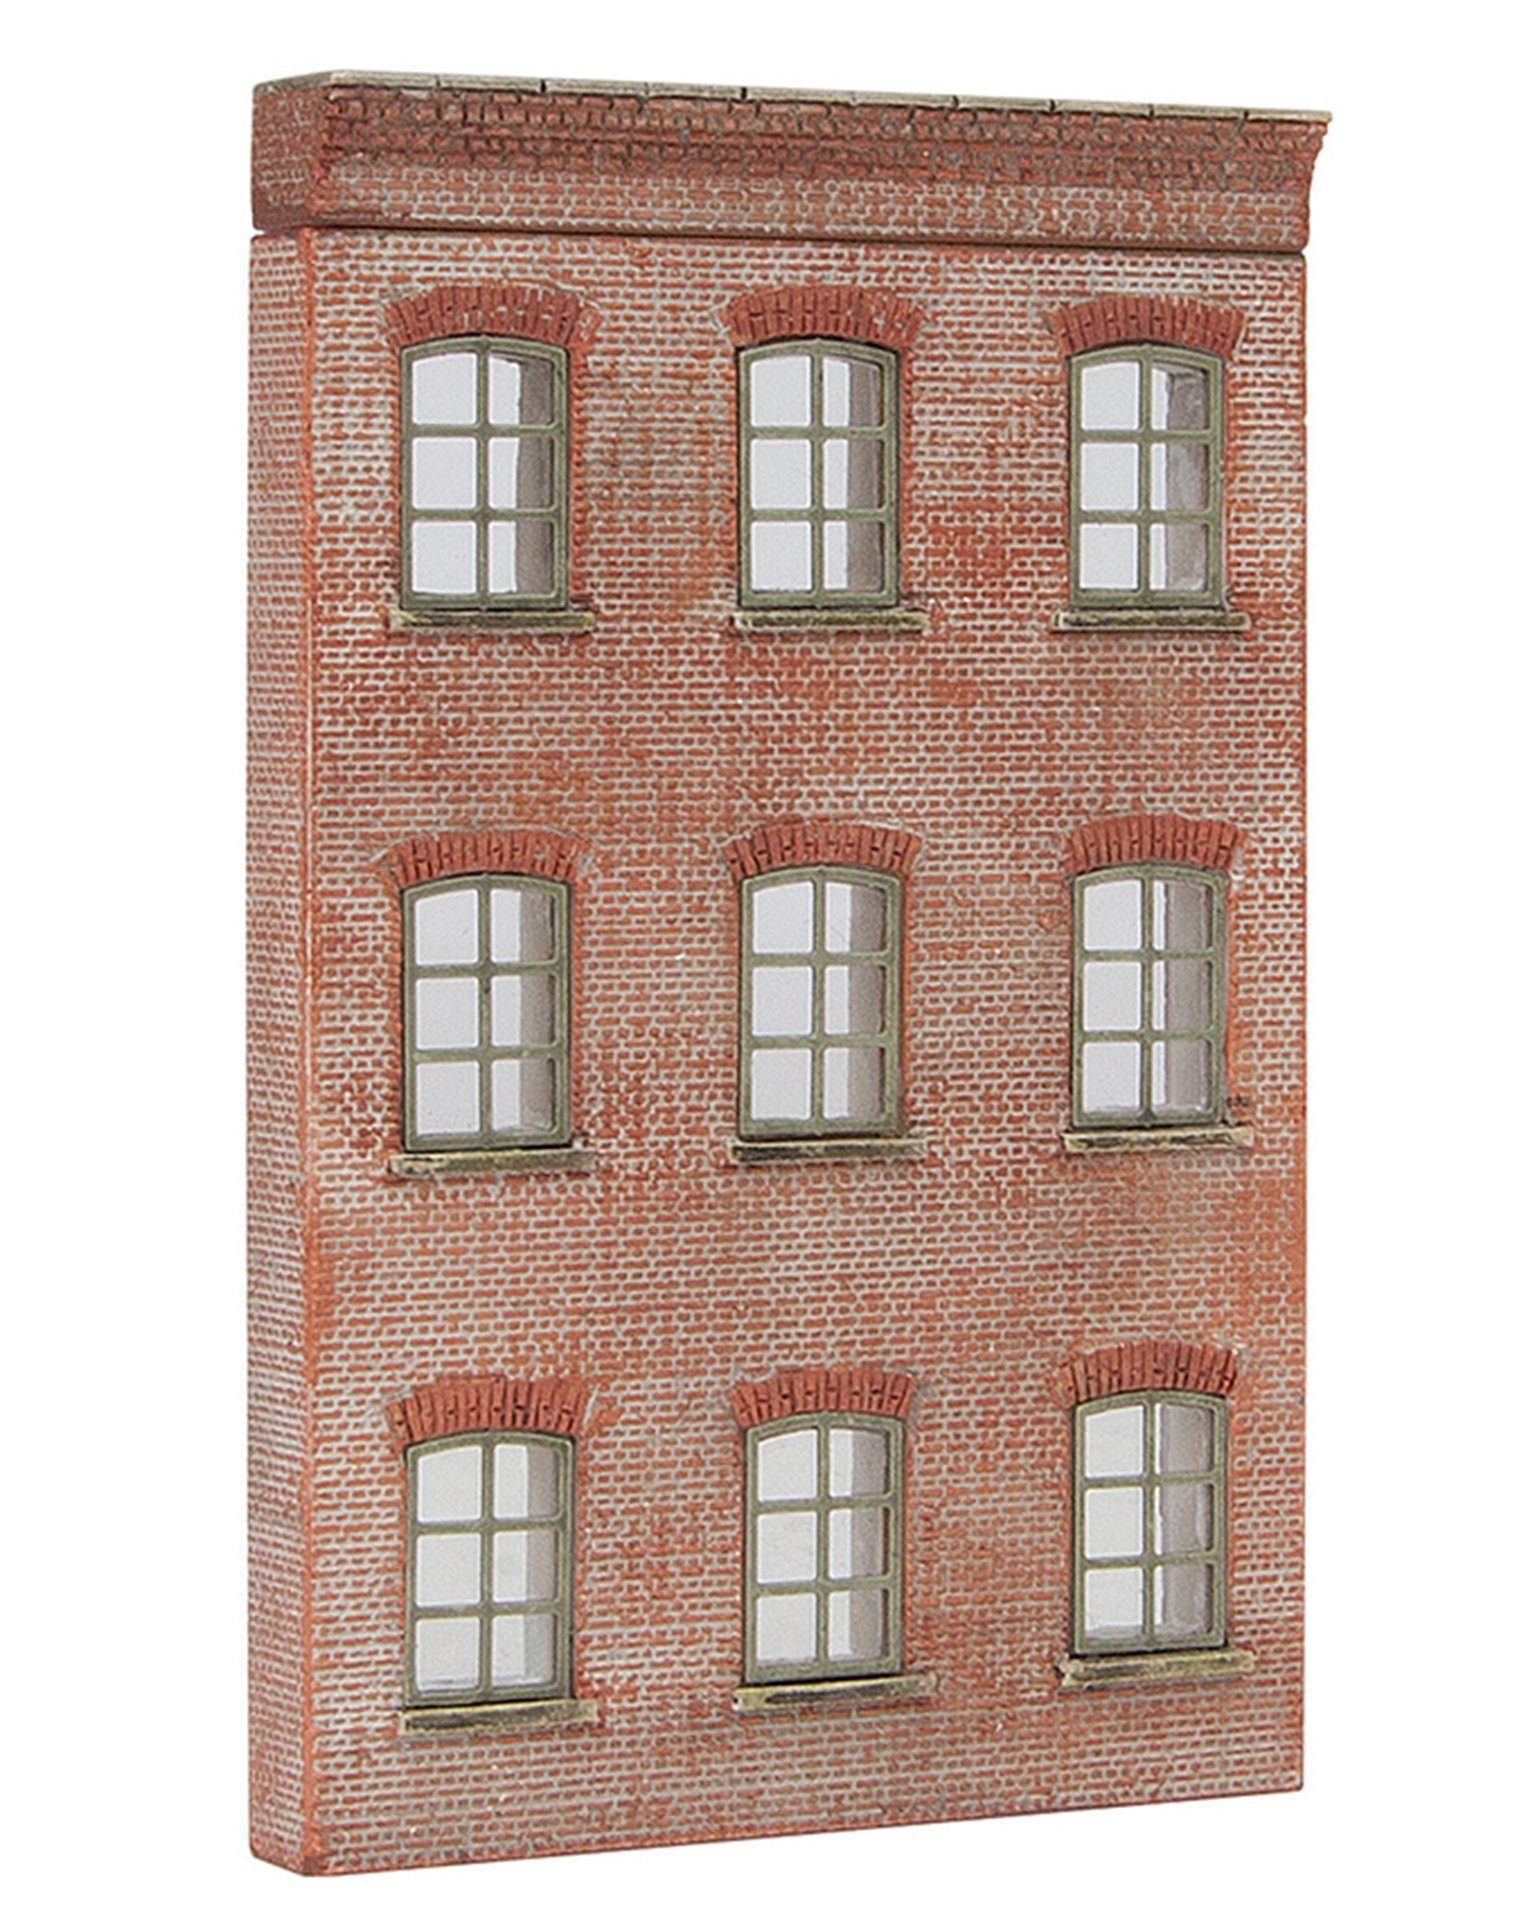 Low Relief Modular Mill Façade